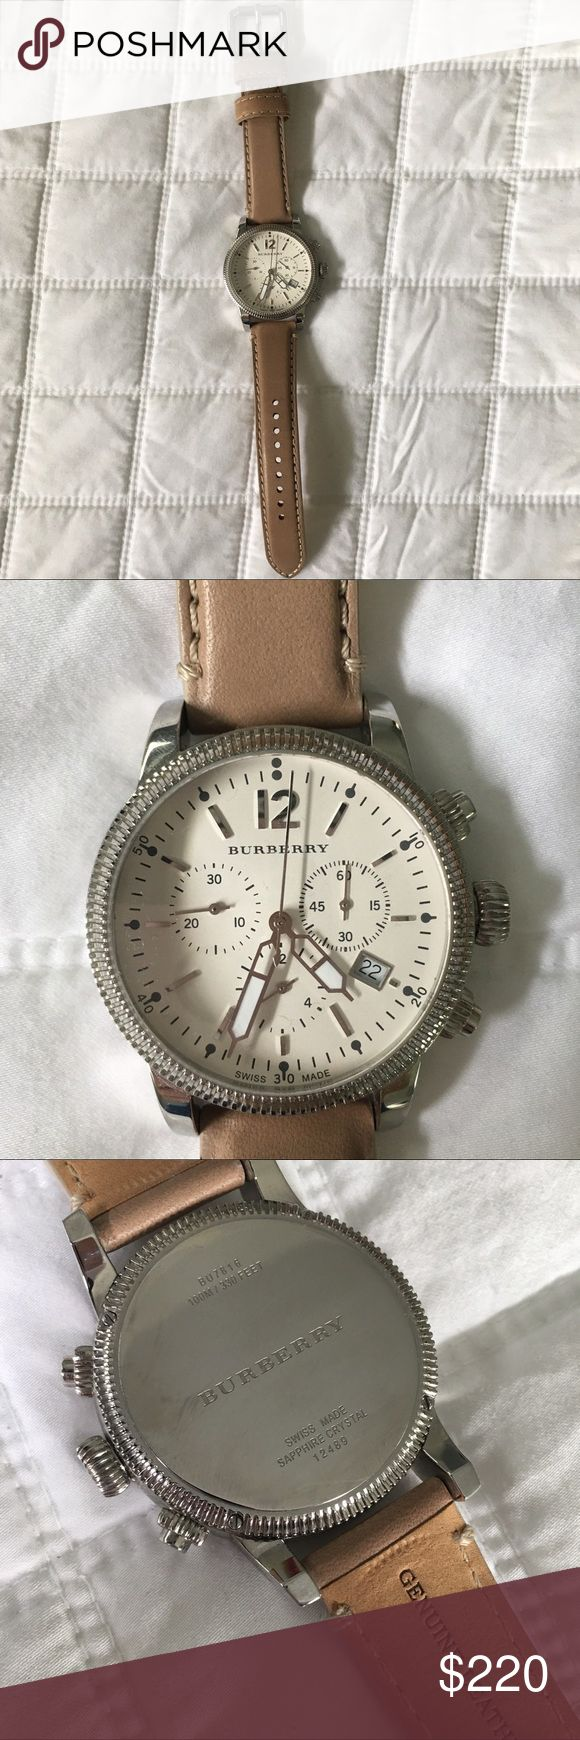 Burberry Chronograph Watch Only worn a few times, leather strap is still stiff.  Nice taupe color band.  Just recently replaced the battery.  I purchased this a few years ago and have misplaced the original box.  I have tiny tiny wrists and this is just bigger than I prefer.  I'm just not cool enough to rock an oversized watch 🤣😭 Burberry Accessories Watches